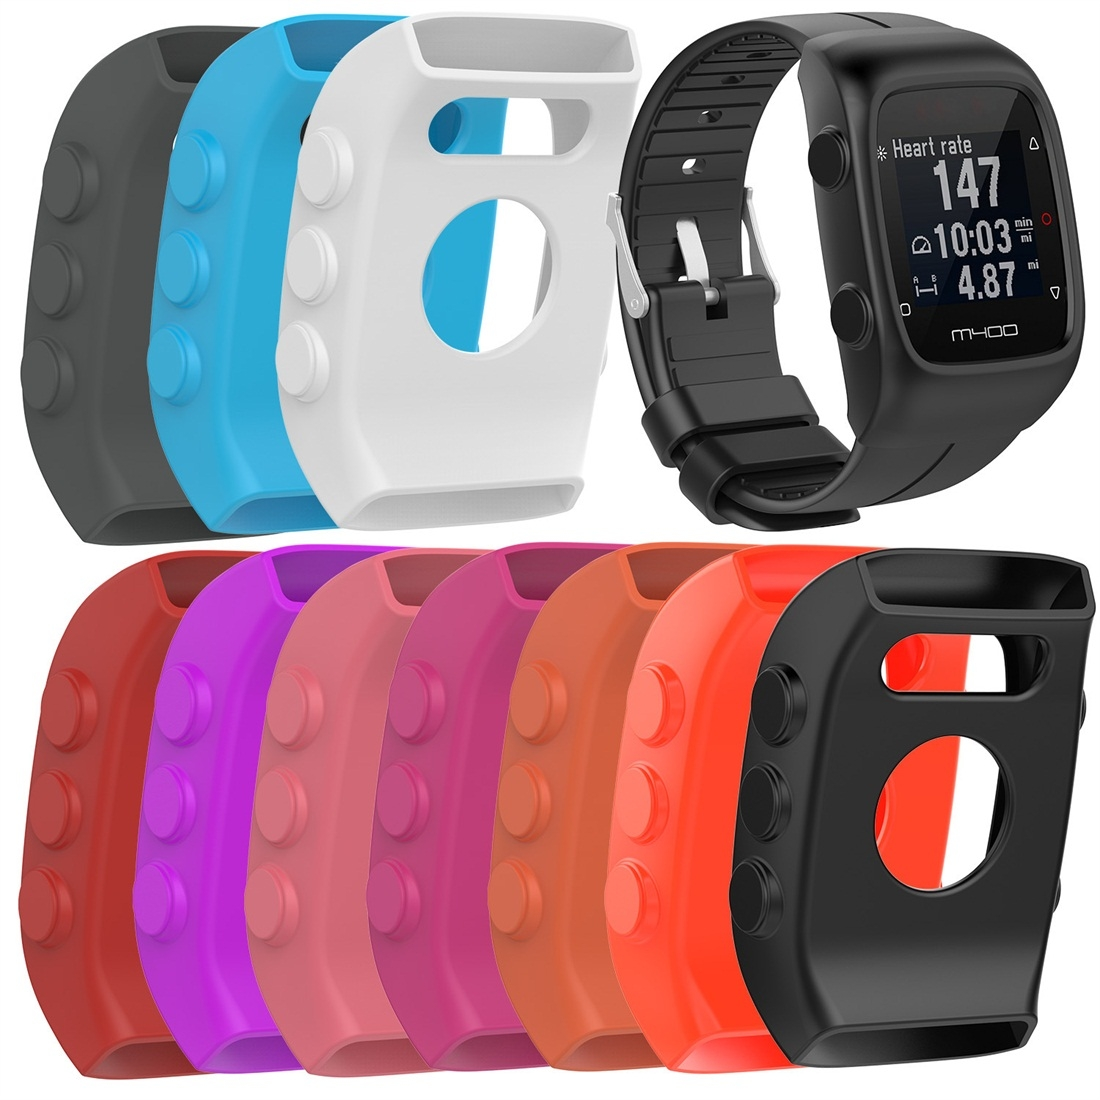 Smart Watch Silicone Protective Case for POLAR M430 (White)